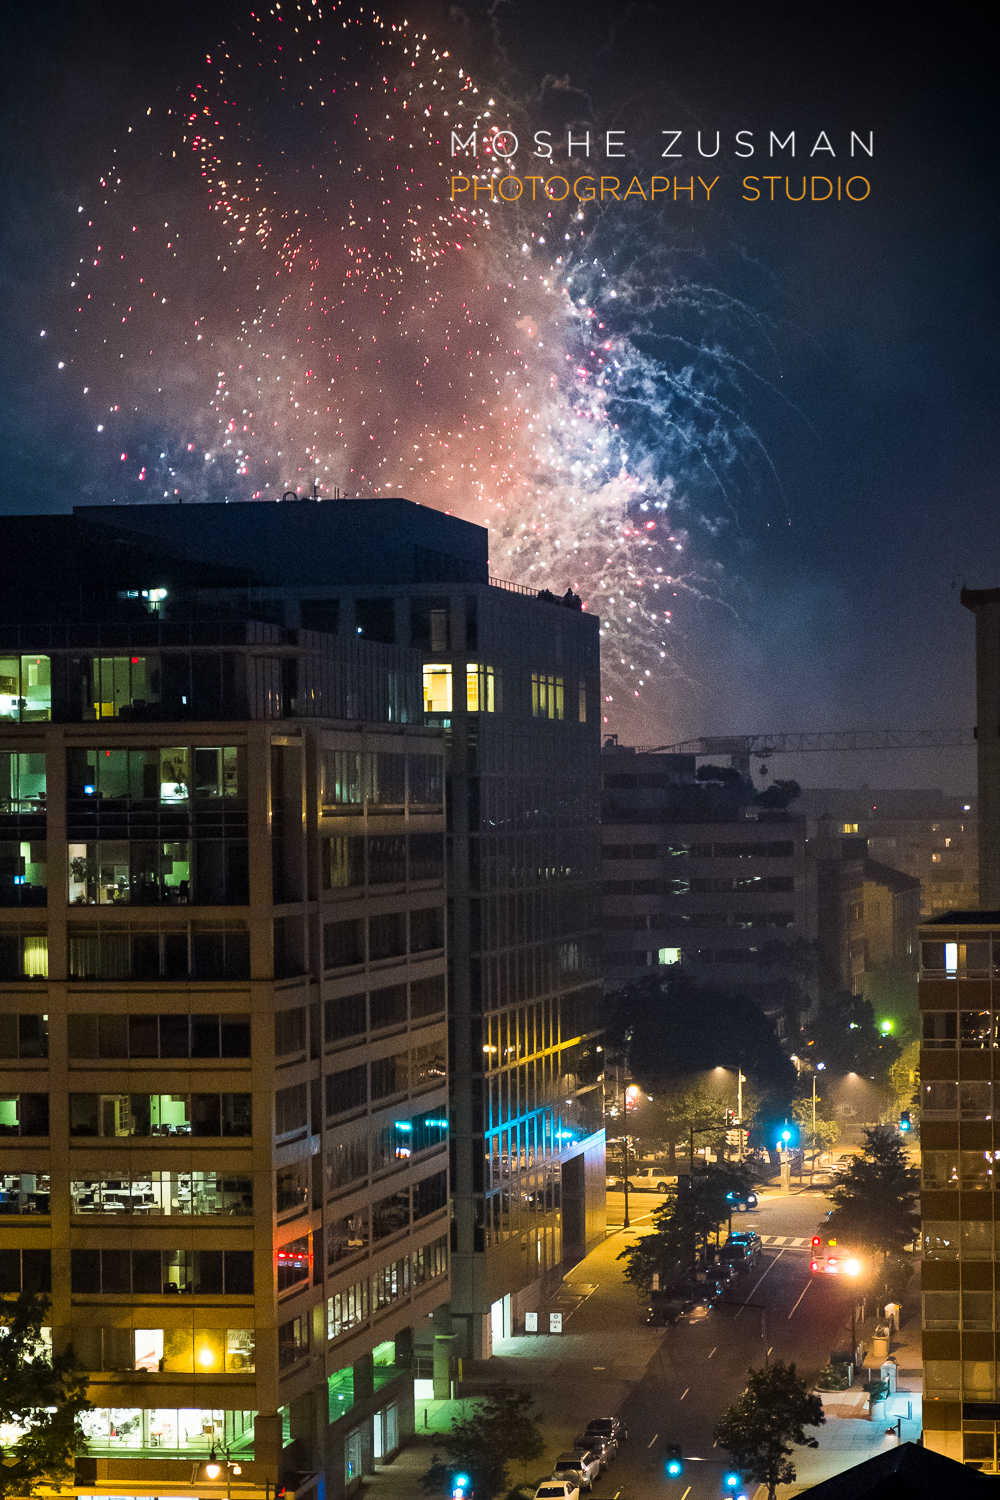 July-4th-fireworks-washington-dc-moshe-zusman-09.JPG